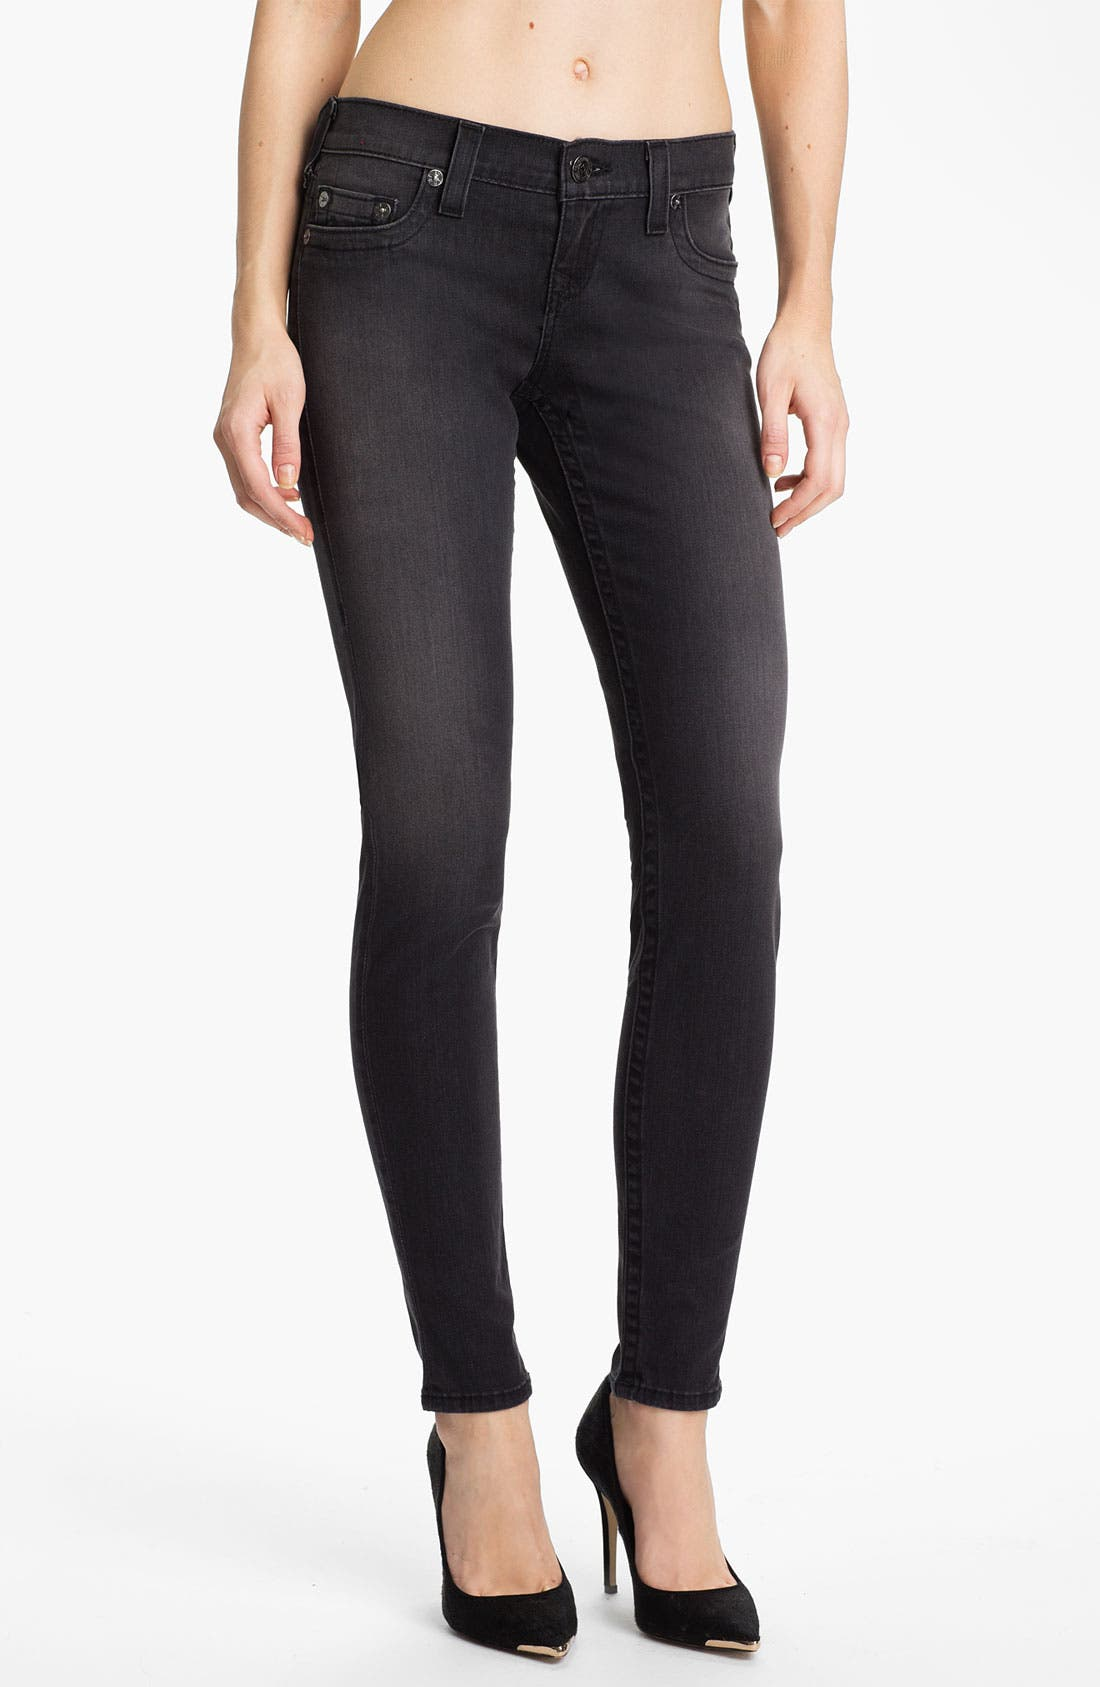 Alternate Image 1 Selected - True Religion Brand Jeans 'Casey' Skinny Stretch Jeans (Hot Lead)